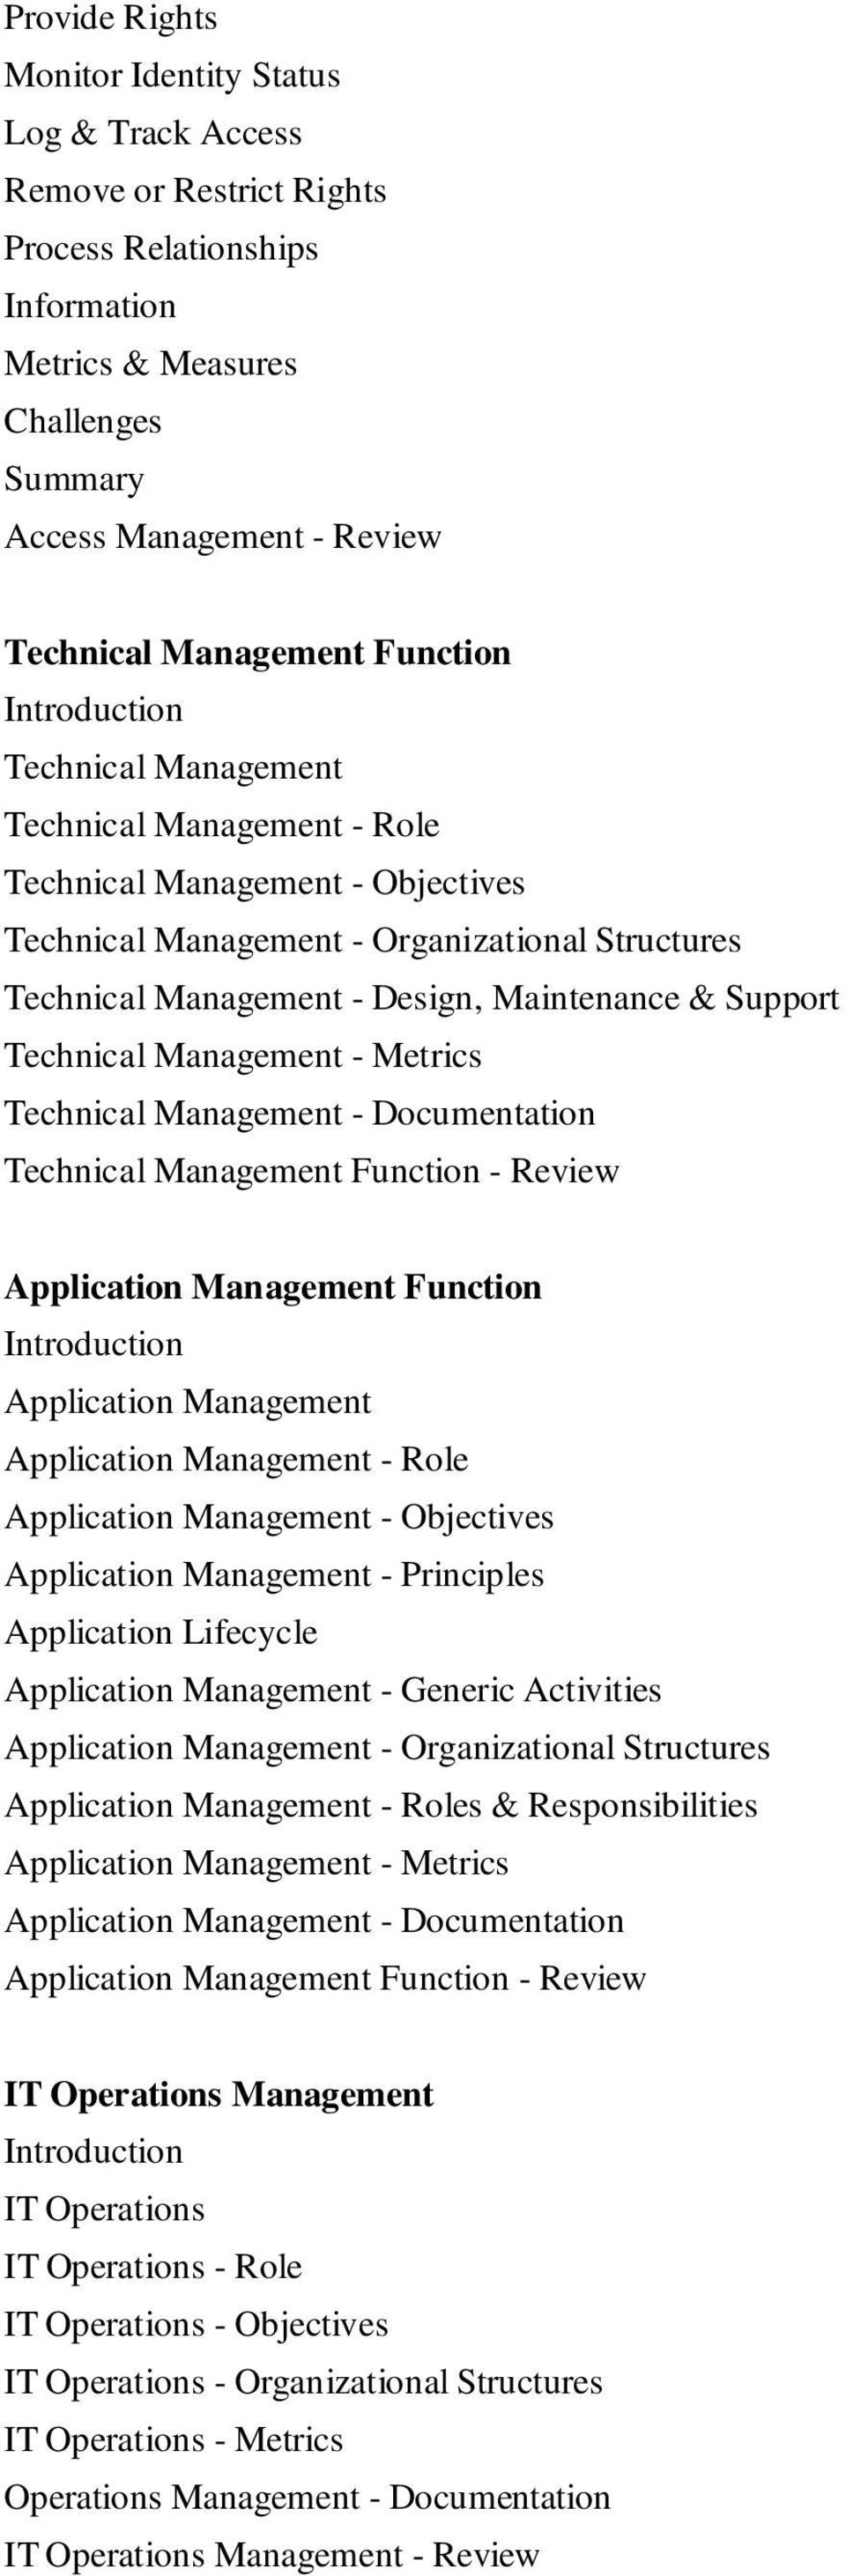 Technical Management Function - Review Application Management Function Application Management Application Management - Role Application Management - s Application Management - Principles Application